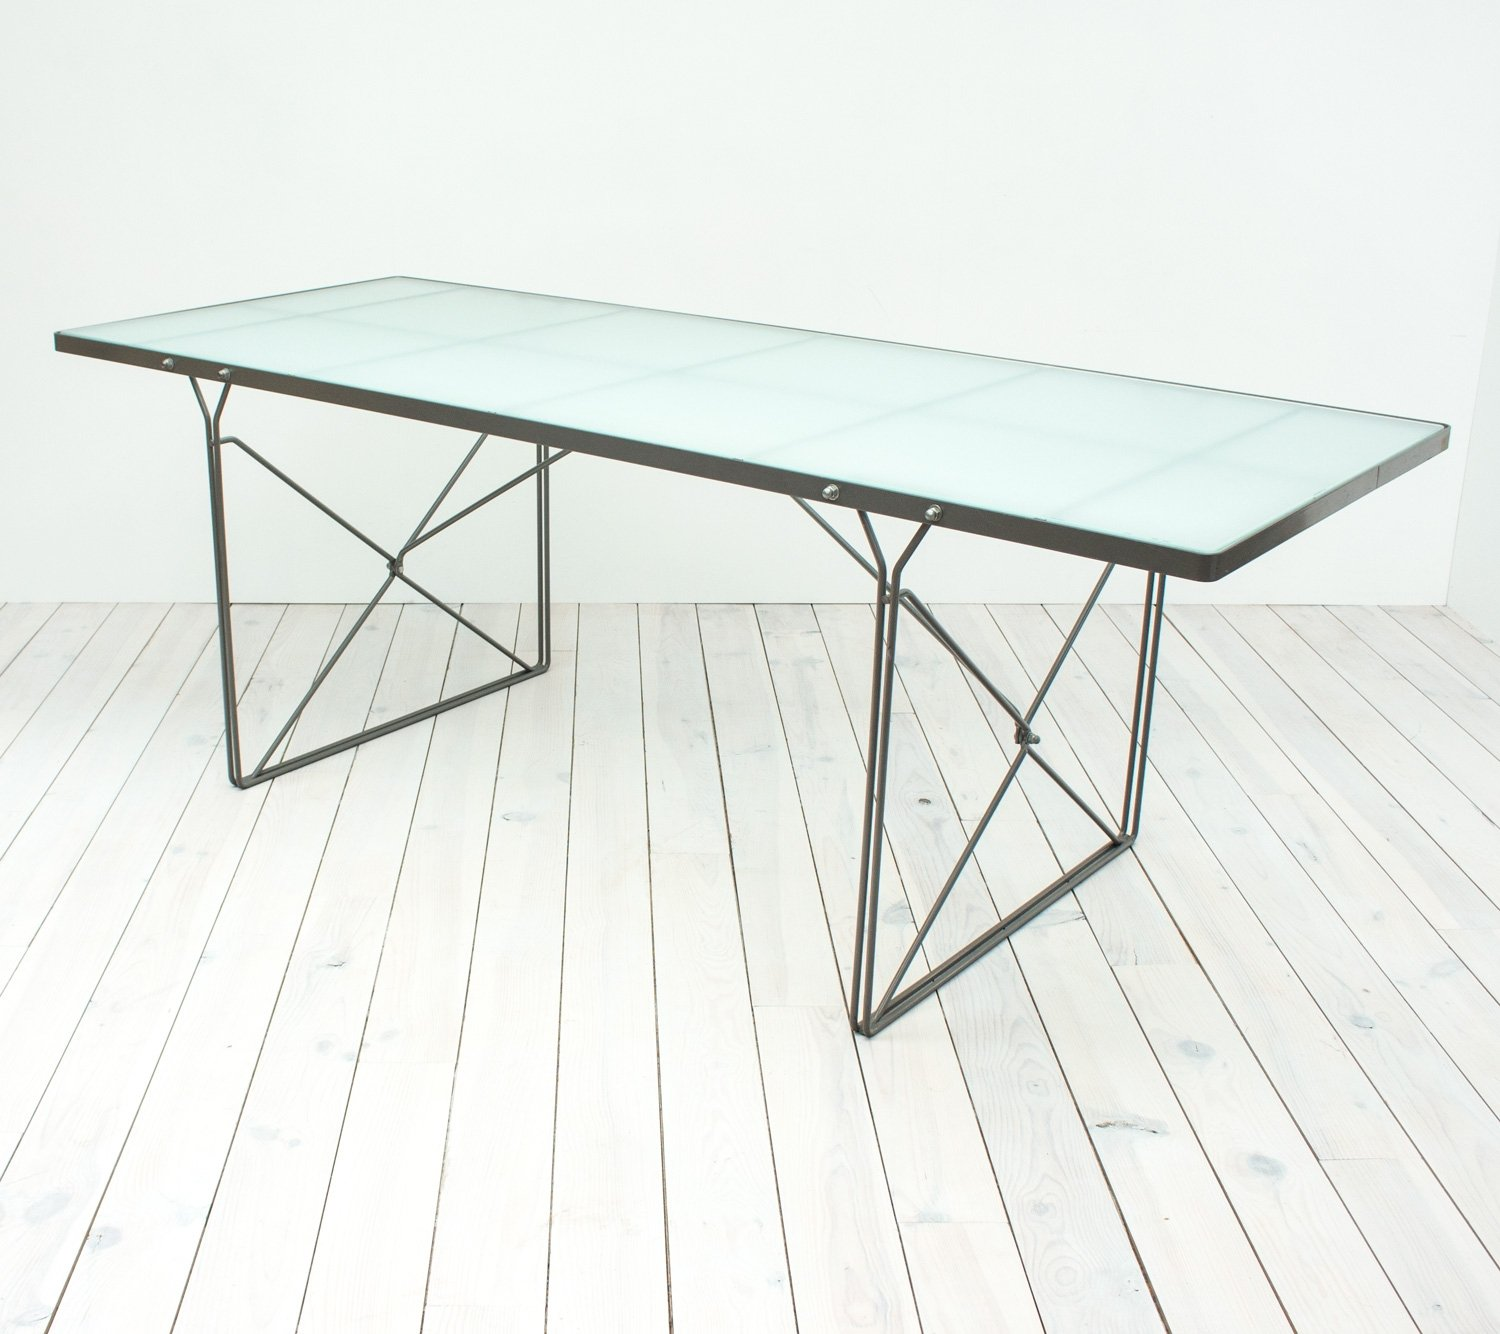 Moment Dining Table By Niels Gammelgaard For Ikea 1980s